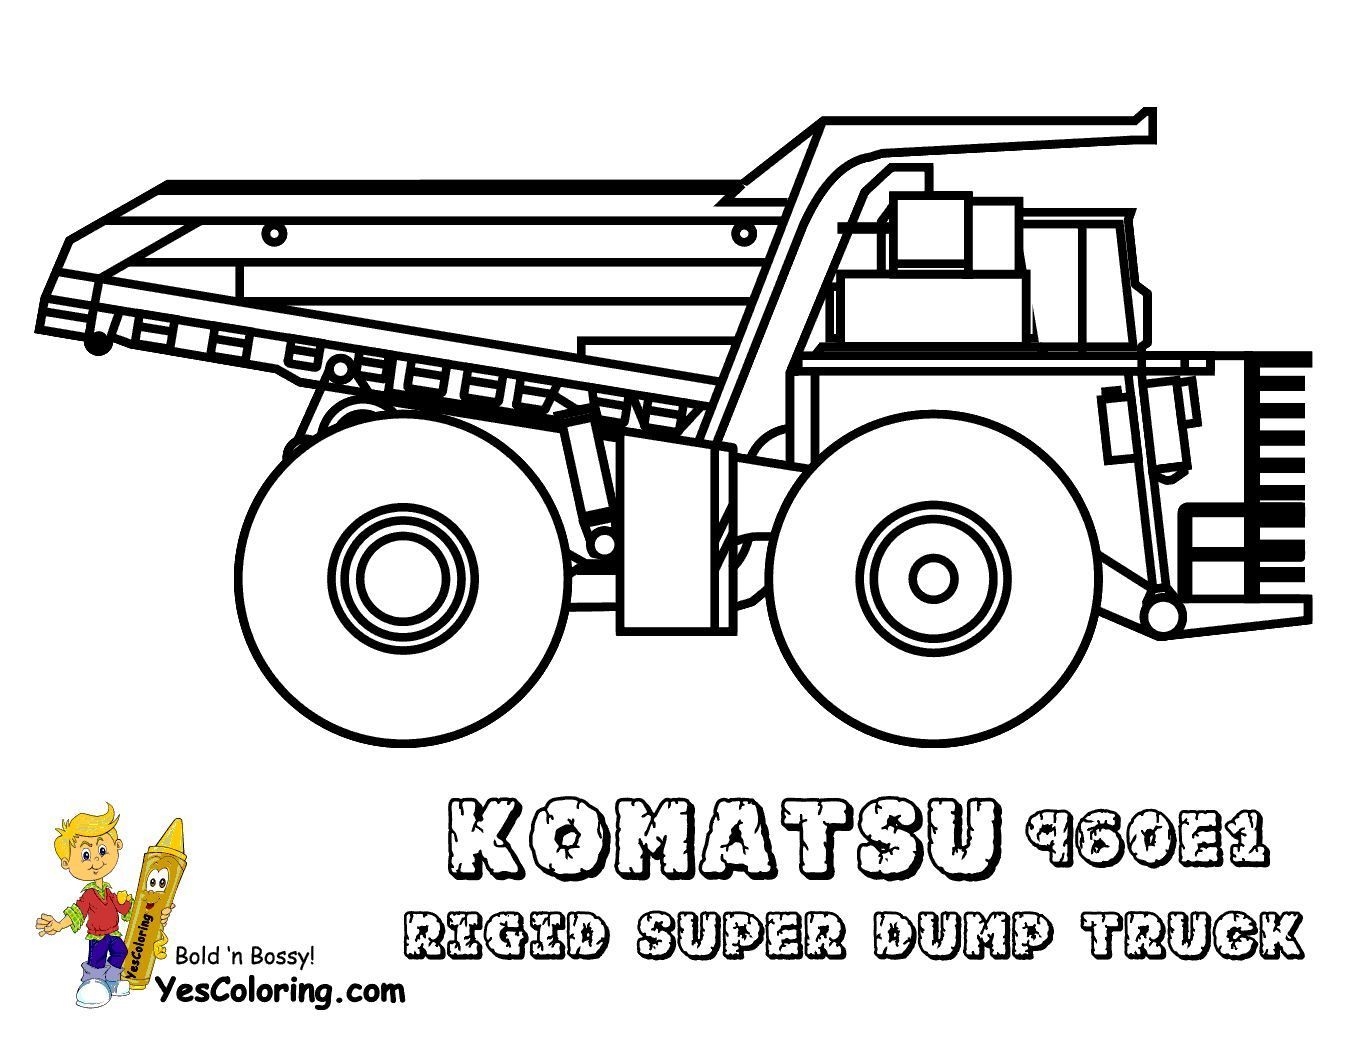 Print Out This Digging Free Construction Coloring Komatsu 960e1 Rigid Dump Truck Fo Real Te Truck Coloring Pages Tonka Truck Construction Coloring Pages